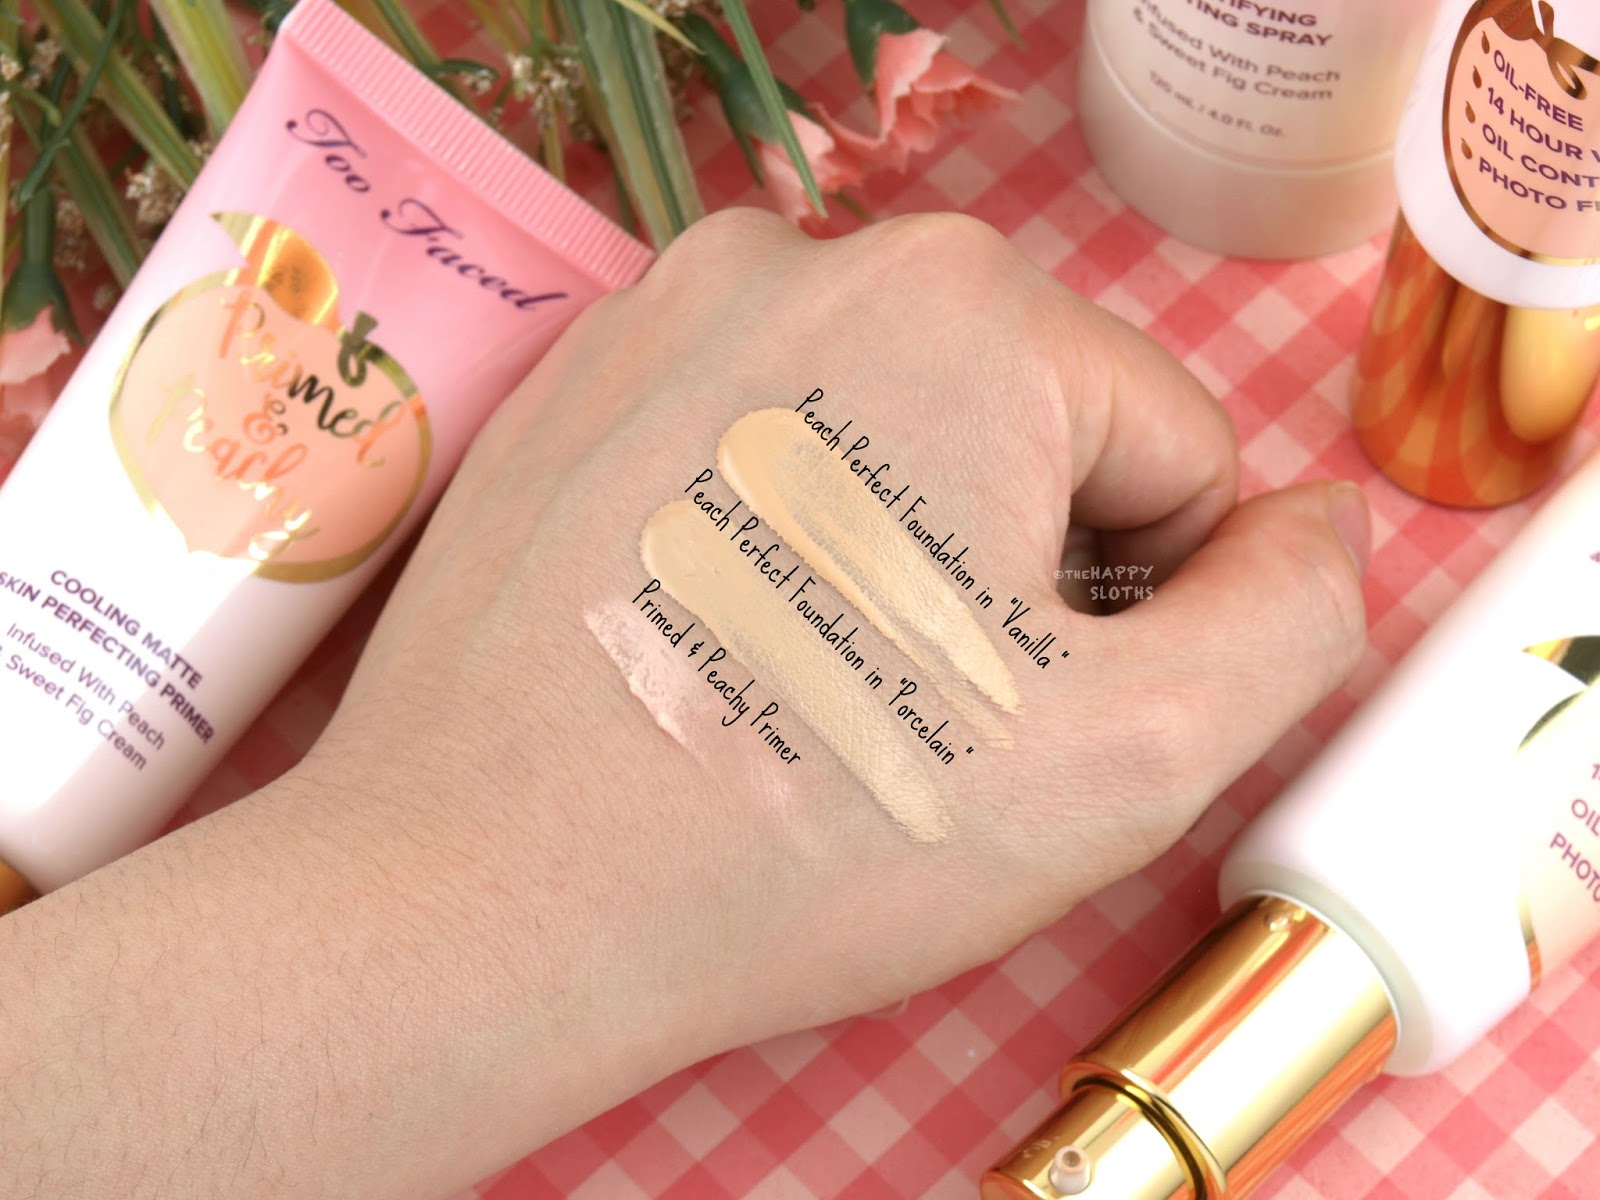 Too Faced Peaches & Cream Collection | Primed & Peachy Primer & Peach Perfect Comfort Matte Foundation: Review and Swatches